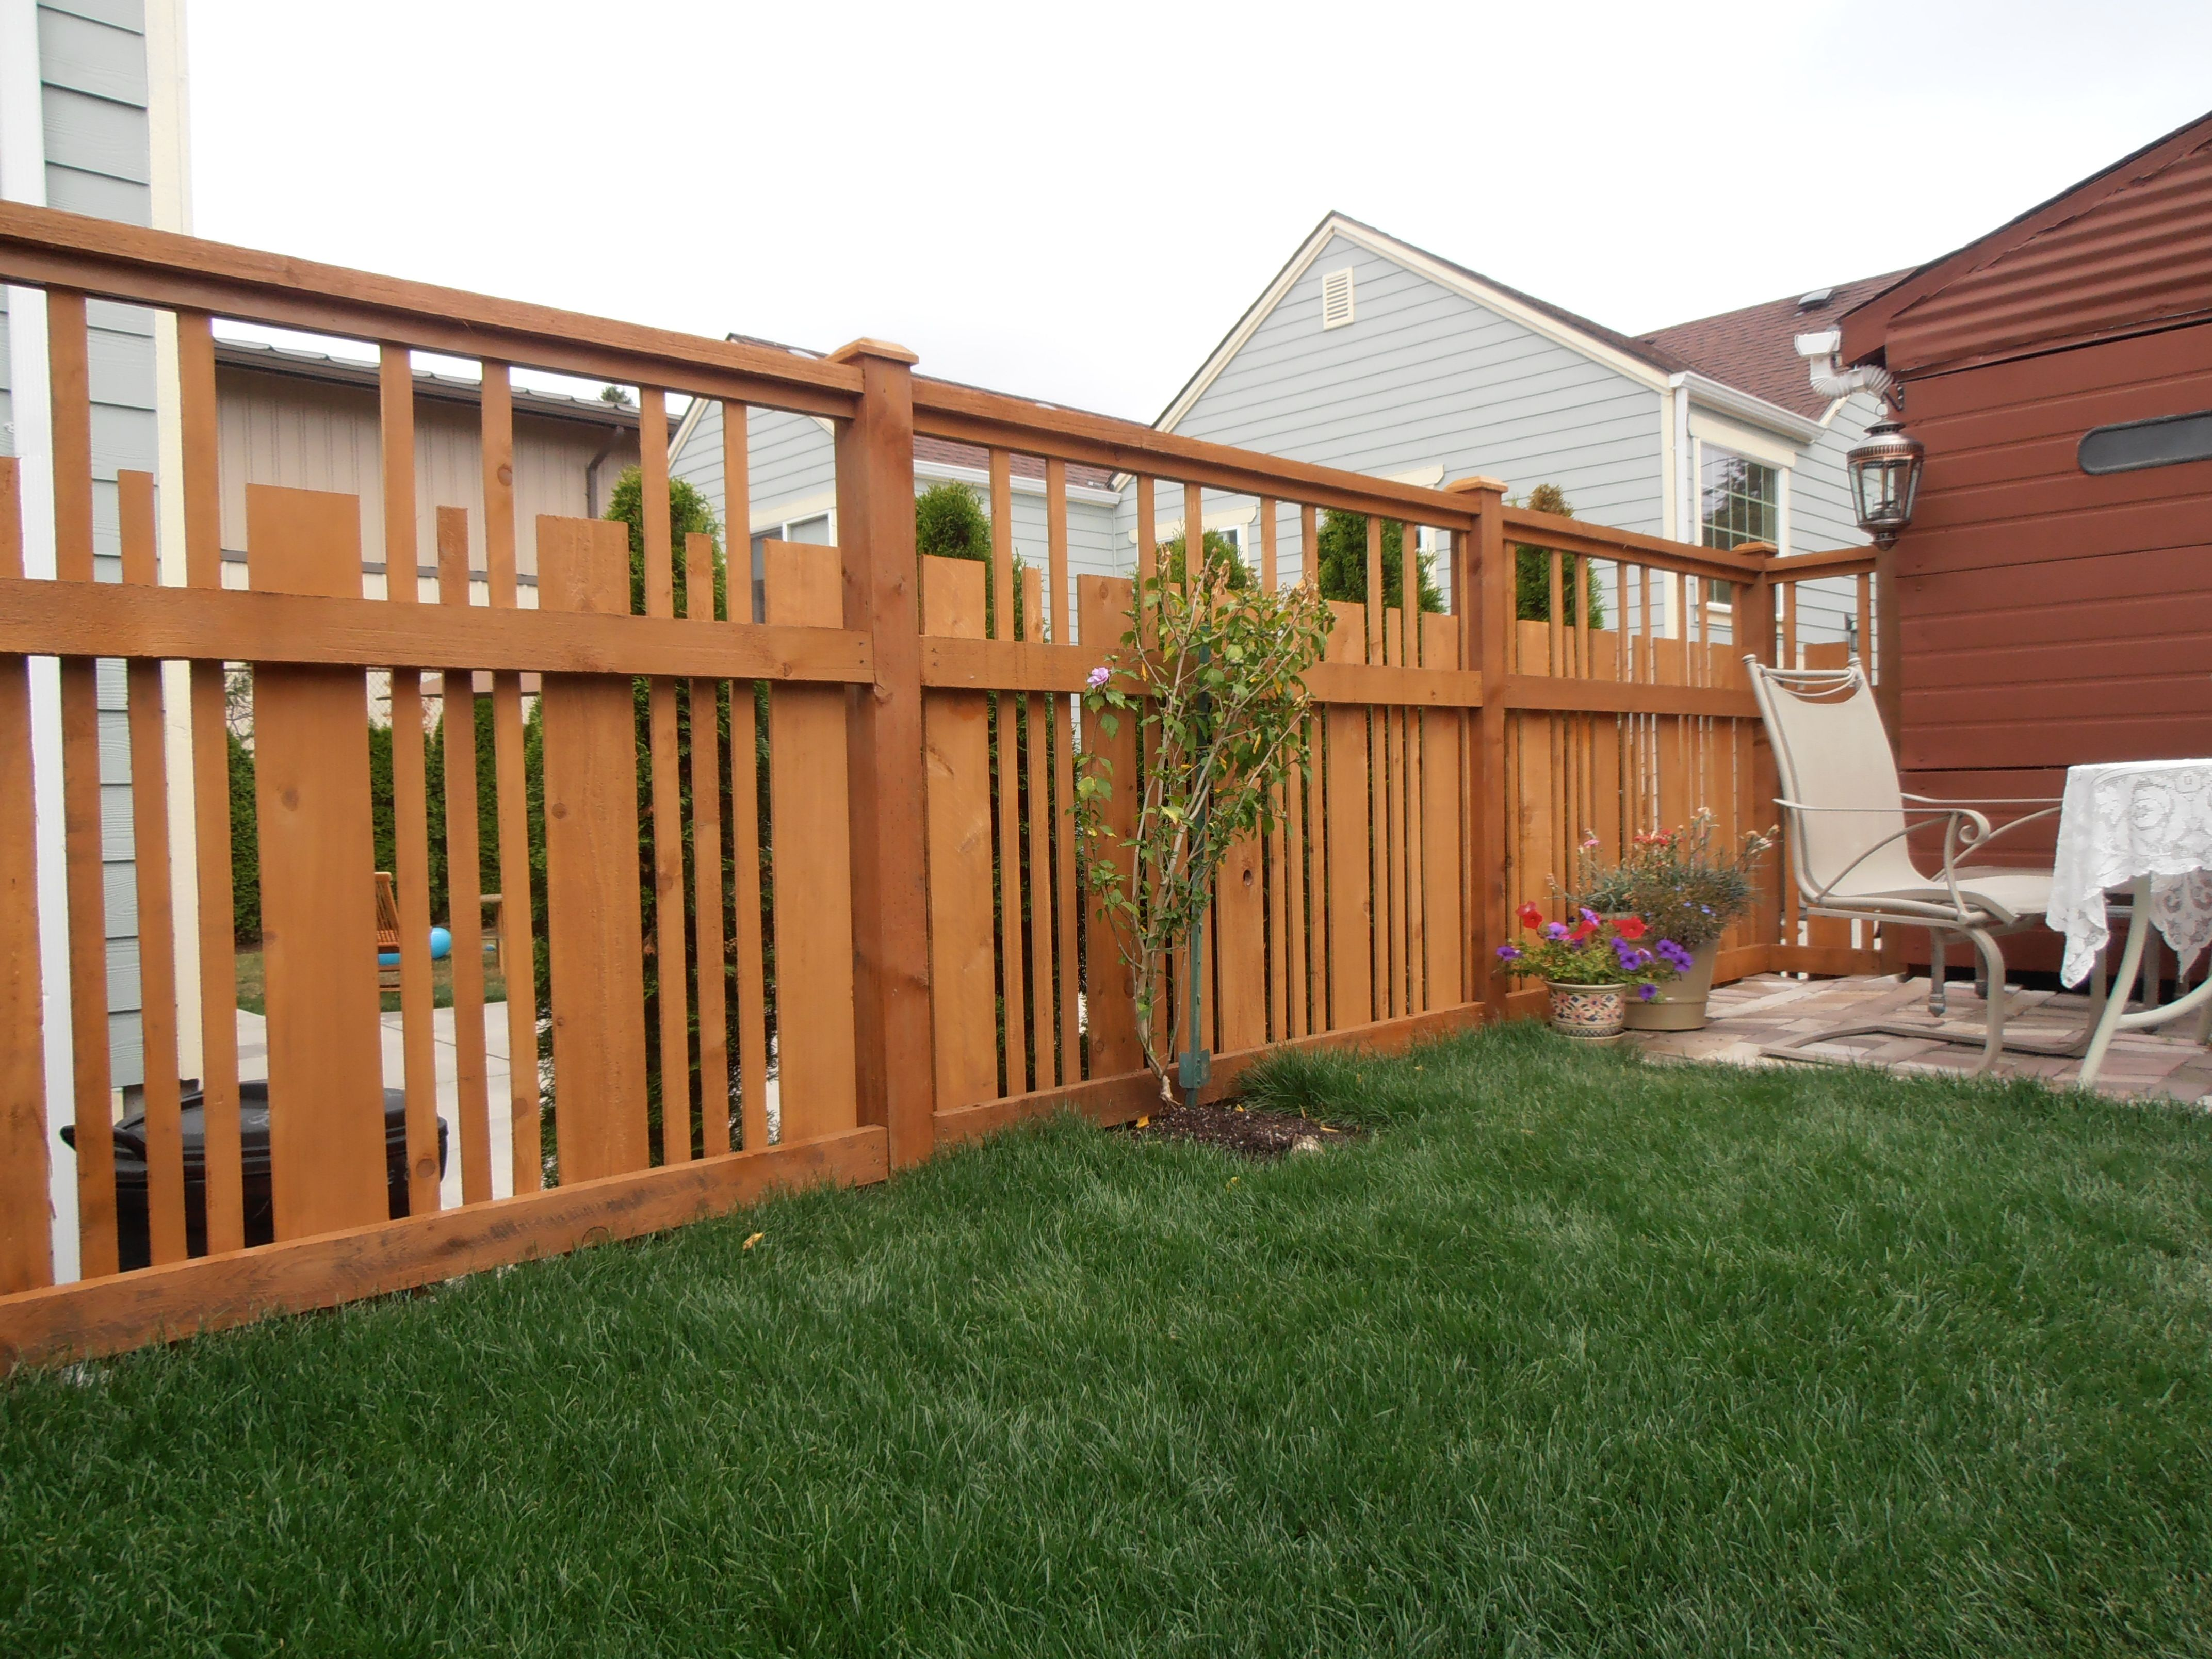 Wooden Fence Designs I absolutely love this fence design its a very fresh modern look i absolutely love this fence design its a very fresh modern look without requiring any different or special materials than a traditional wooden fence workwithnaturefo